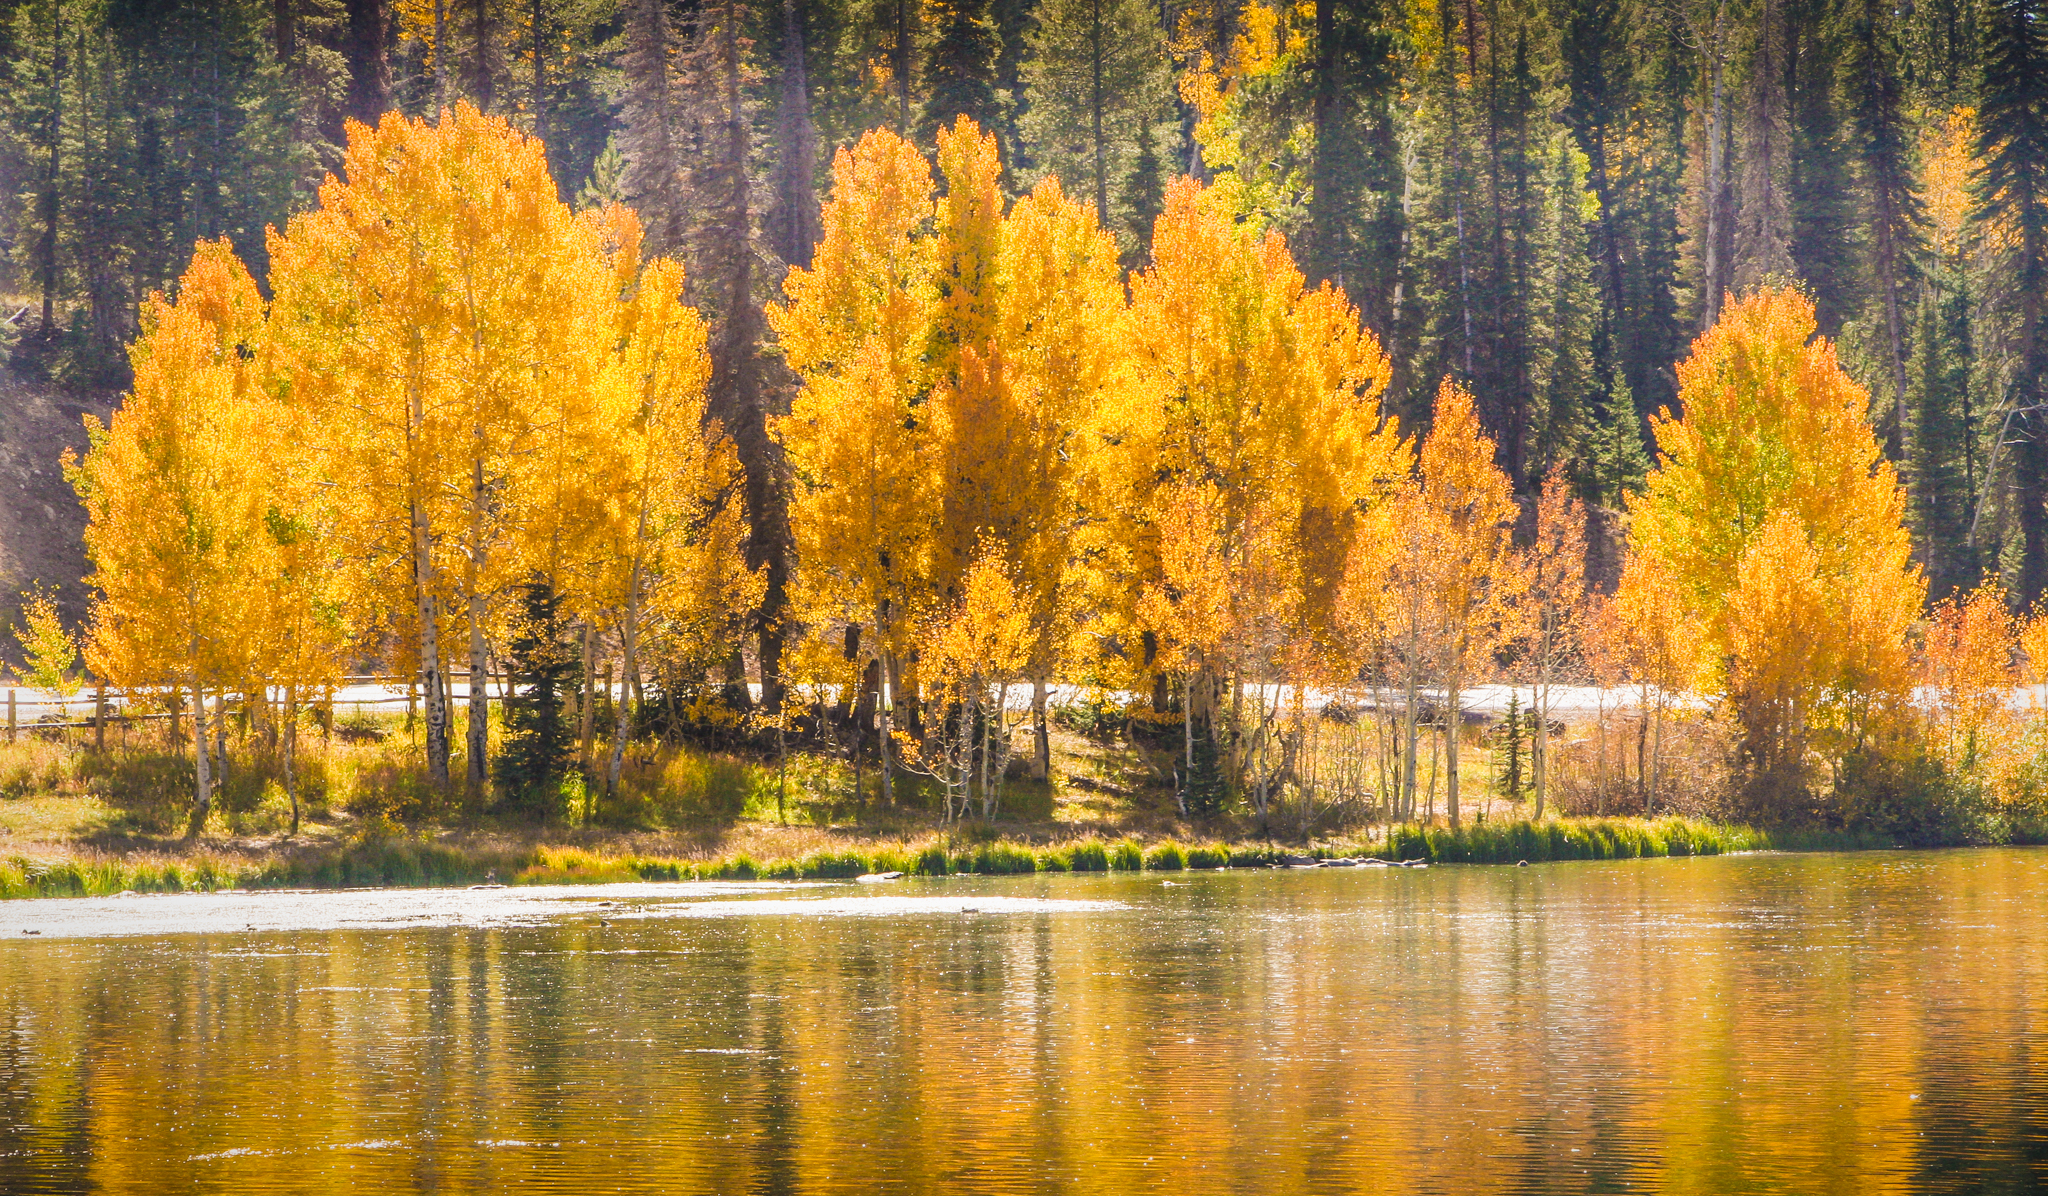 Golden aspens, Finding Fall Color Gold in Zion National Park